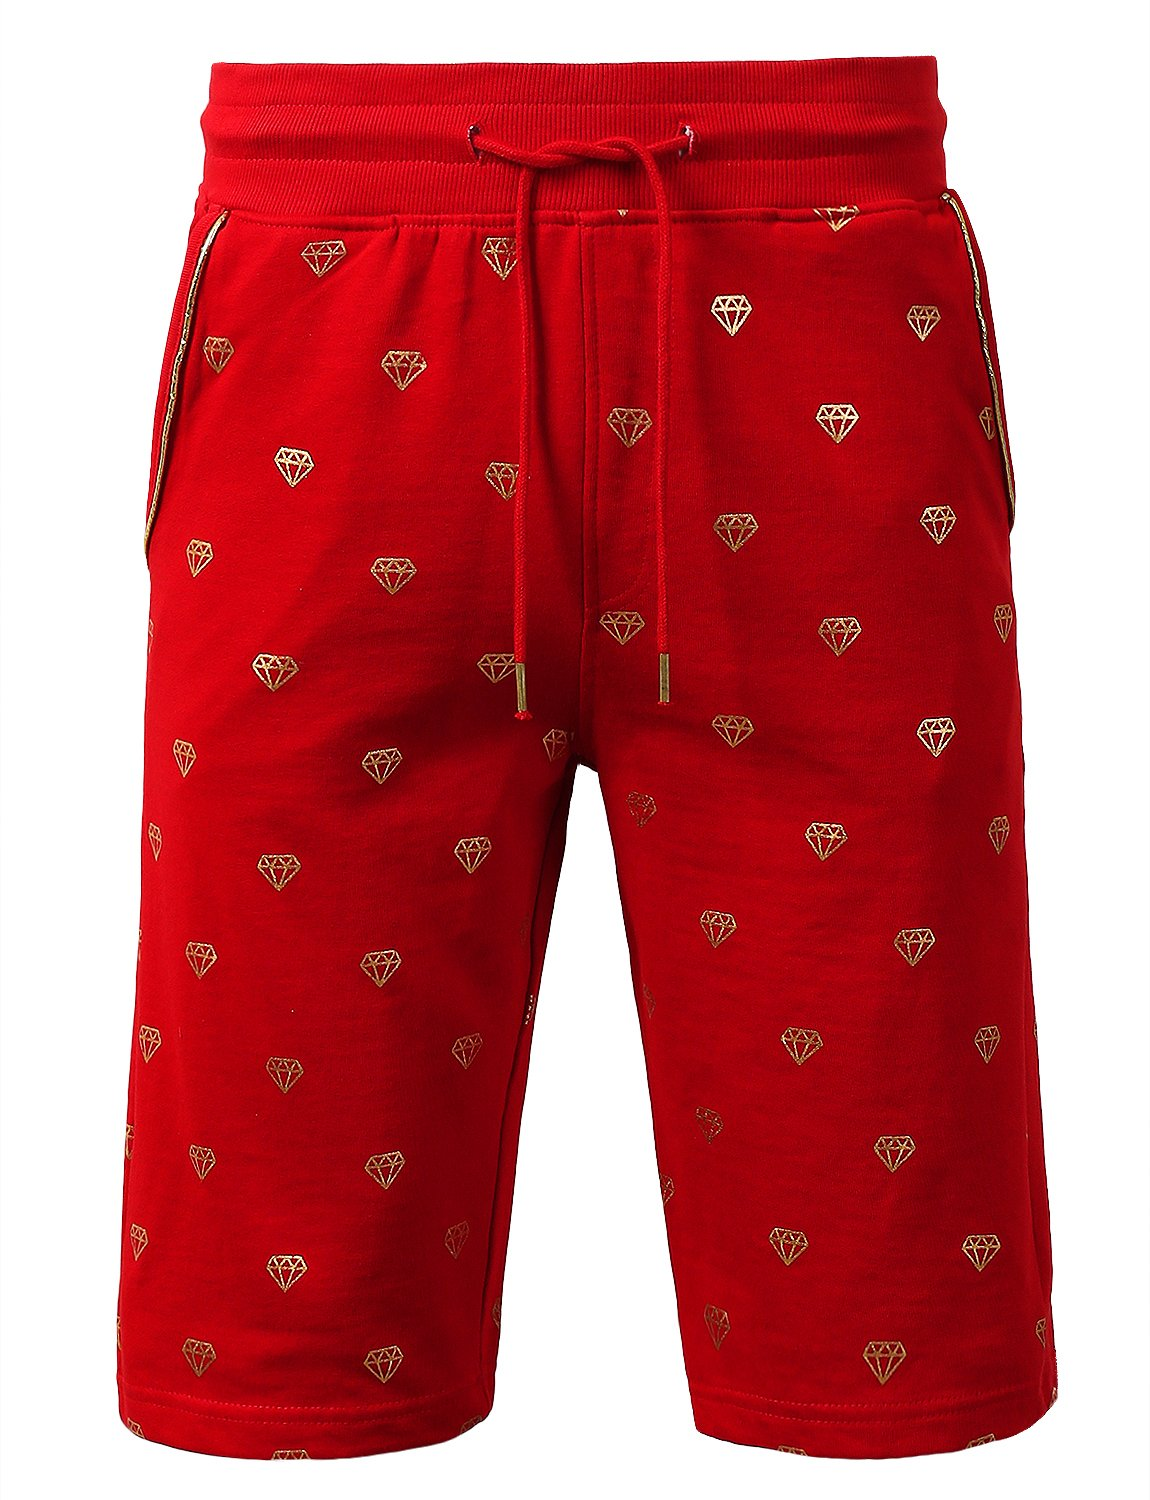 URBANCREWS SHORTS メンズ B07C84NP2Z Large Ambs055_red Ambs055_red Large